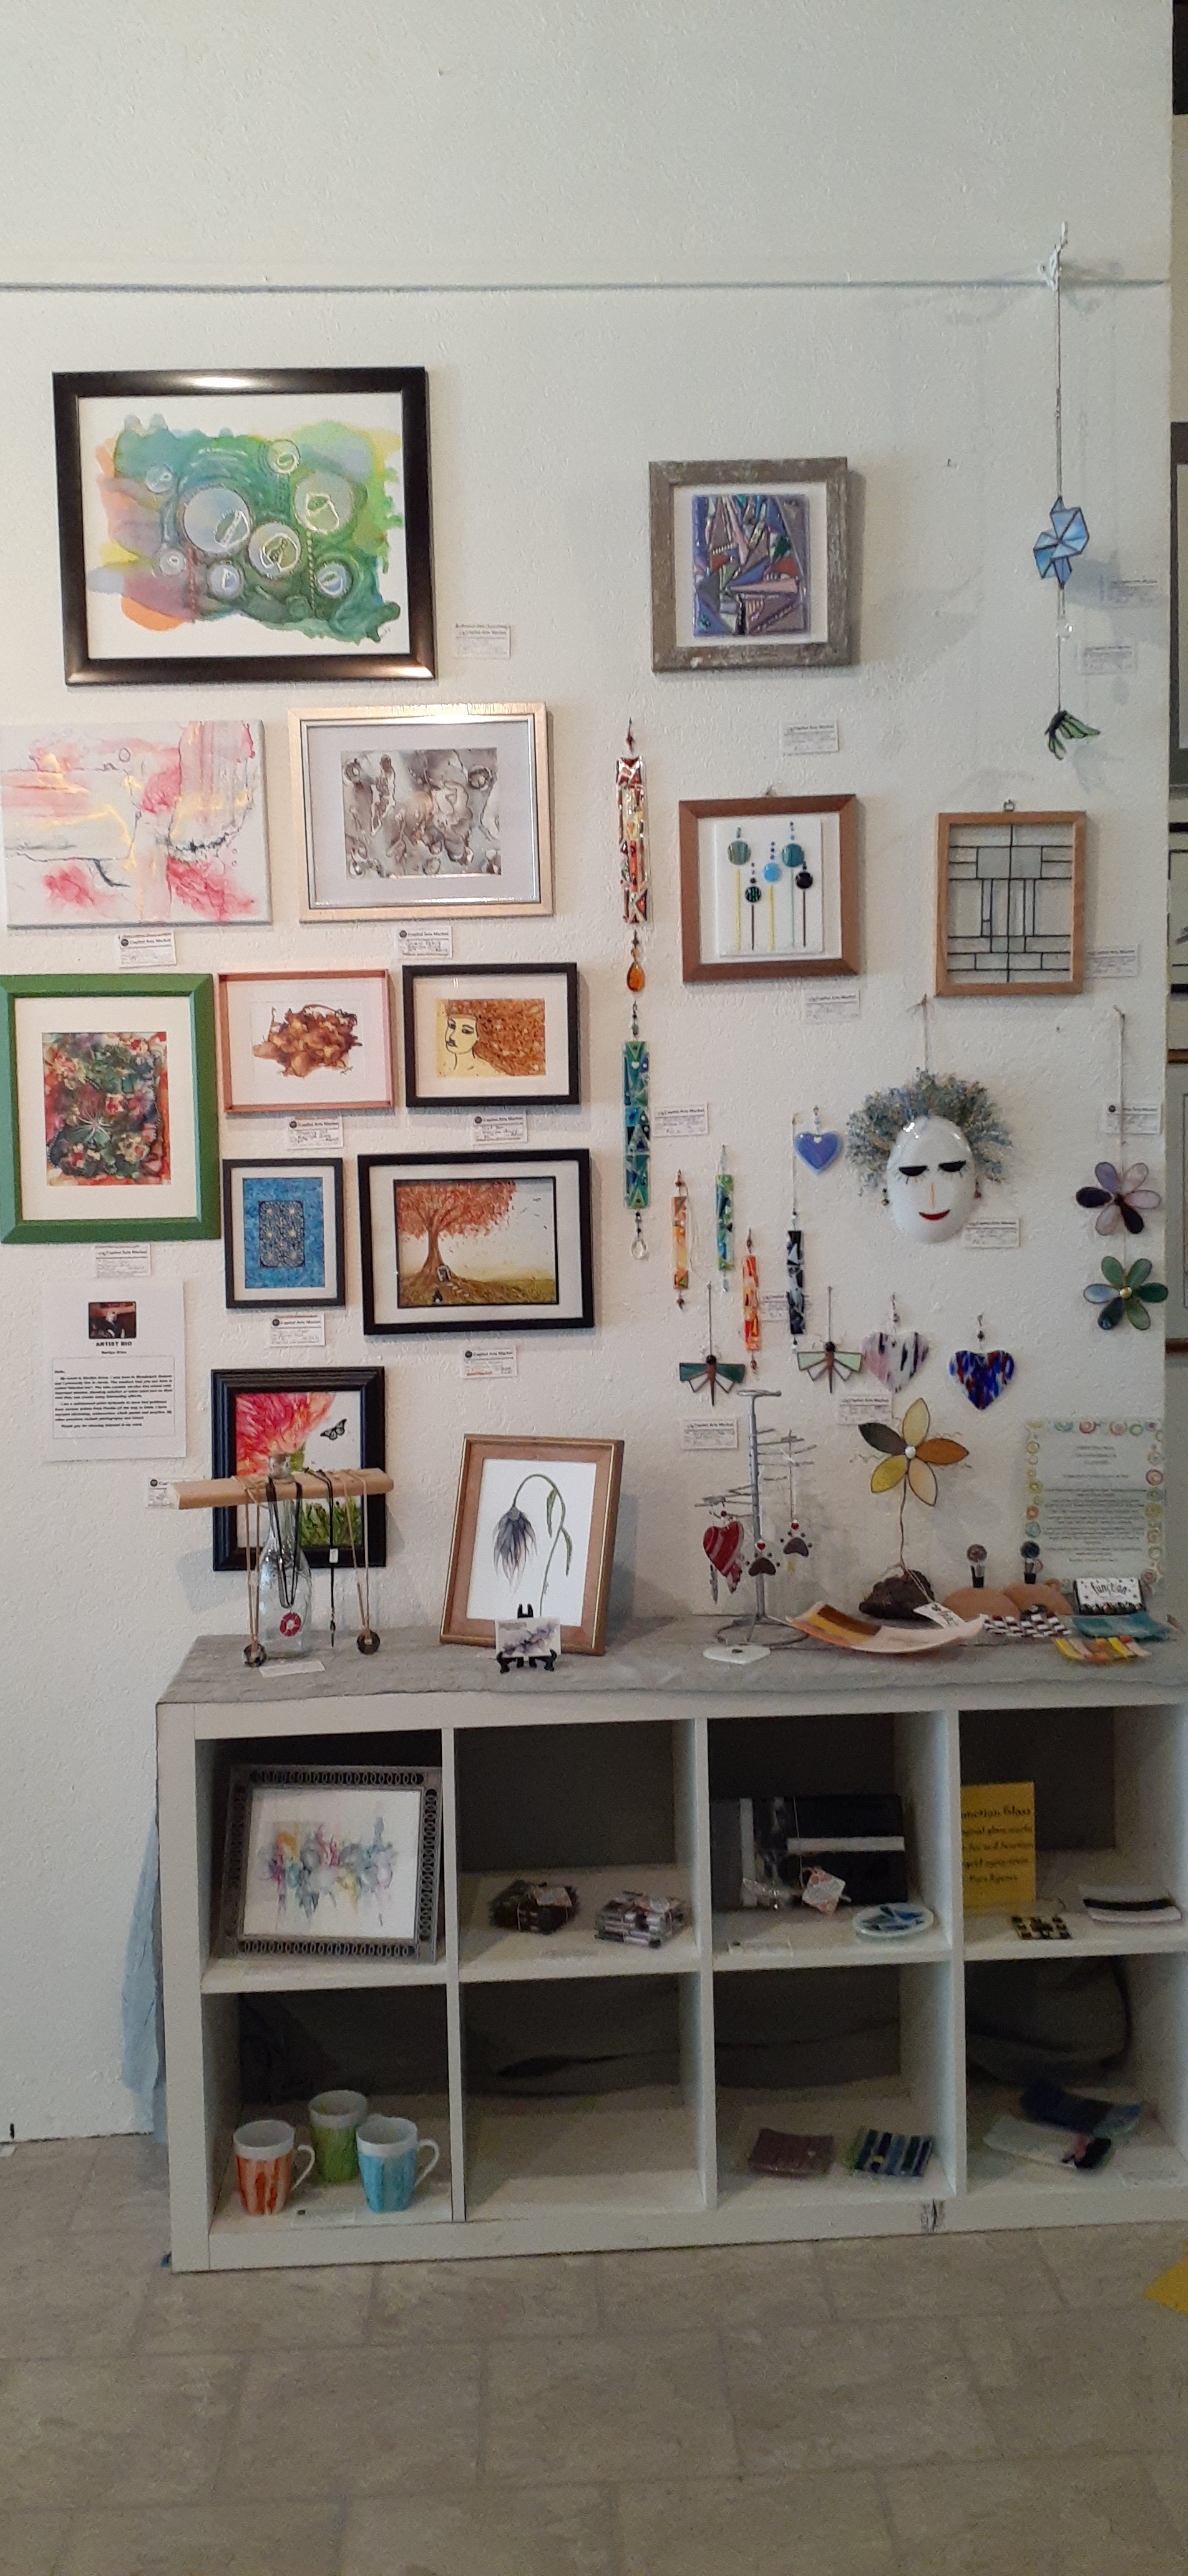 Works by Marilyn Grice and Ingrid Zyma-Irvin